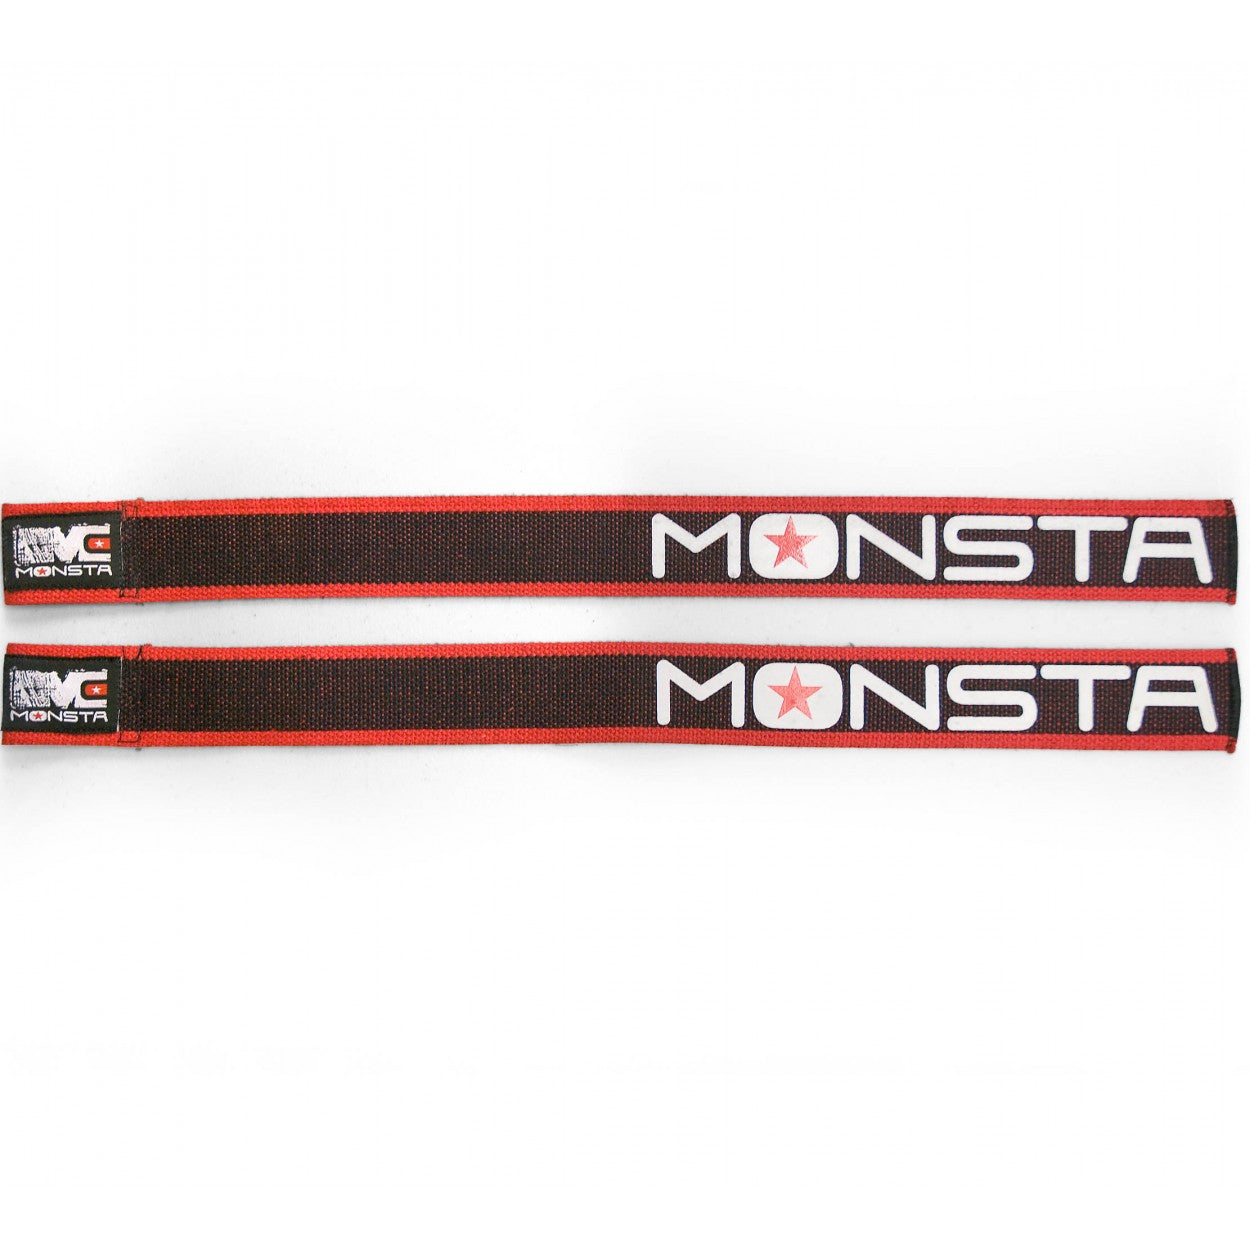 PRO LEVEL LIFTING STRAPS - Monsta Clothing Australia